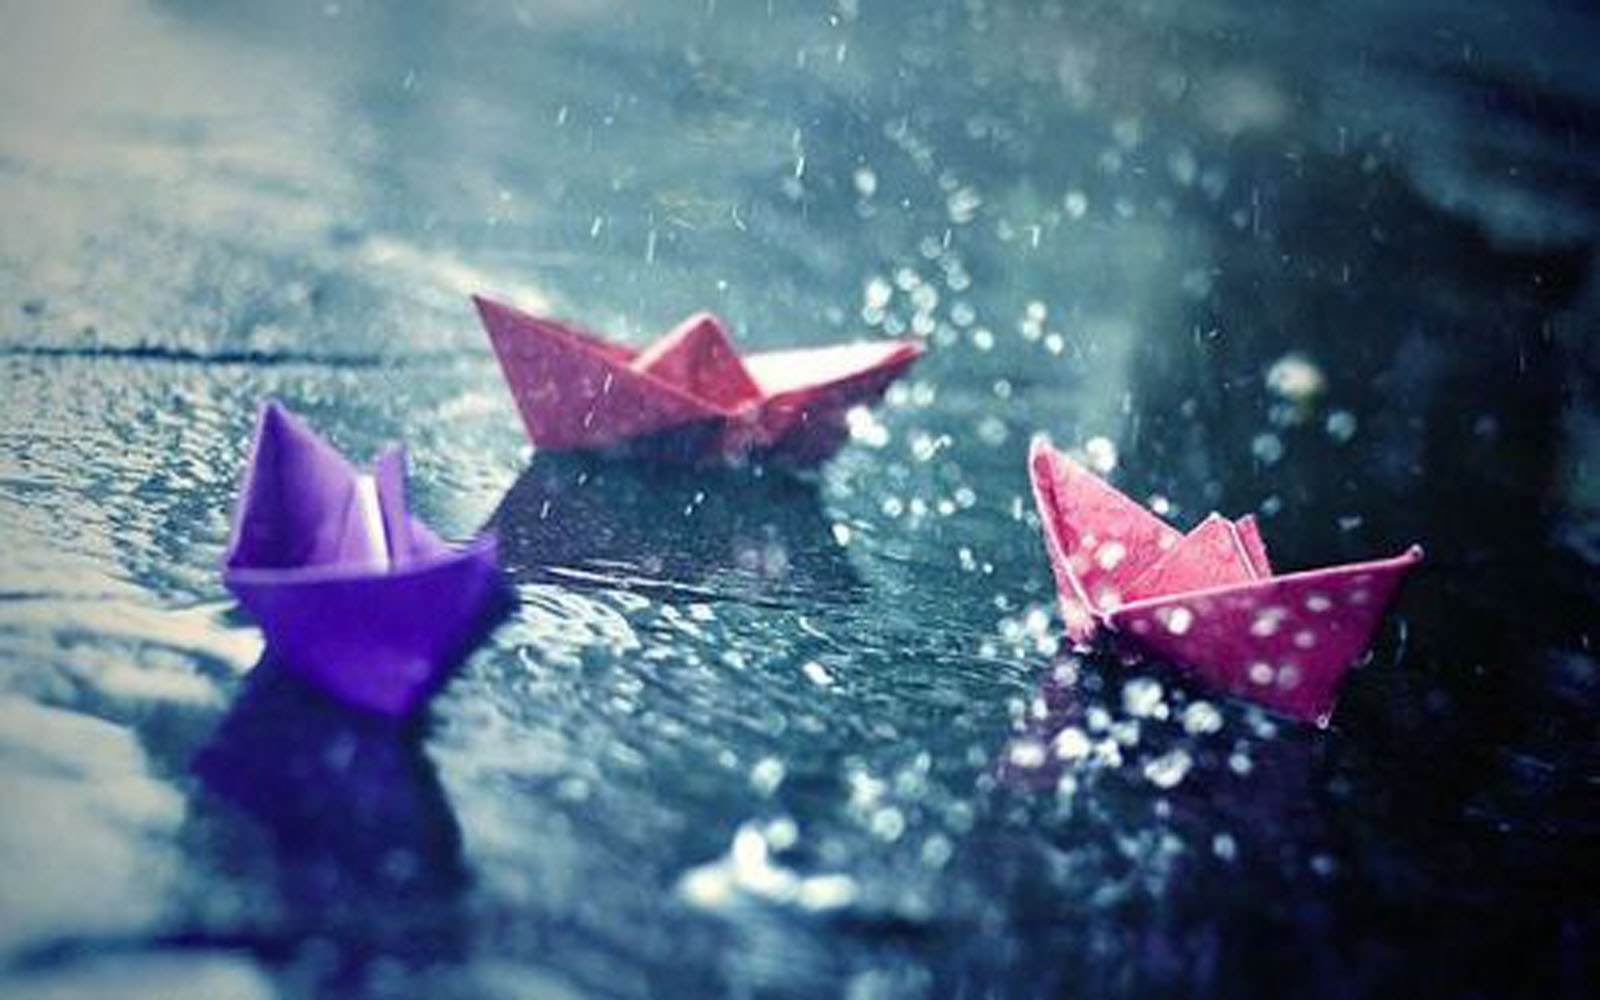 Rain HD Wallpapers Rain HD Wallpapers : Check out the cool latest Rain